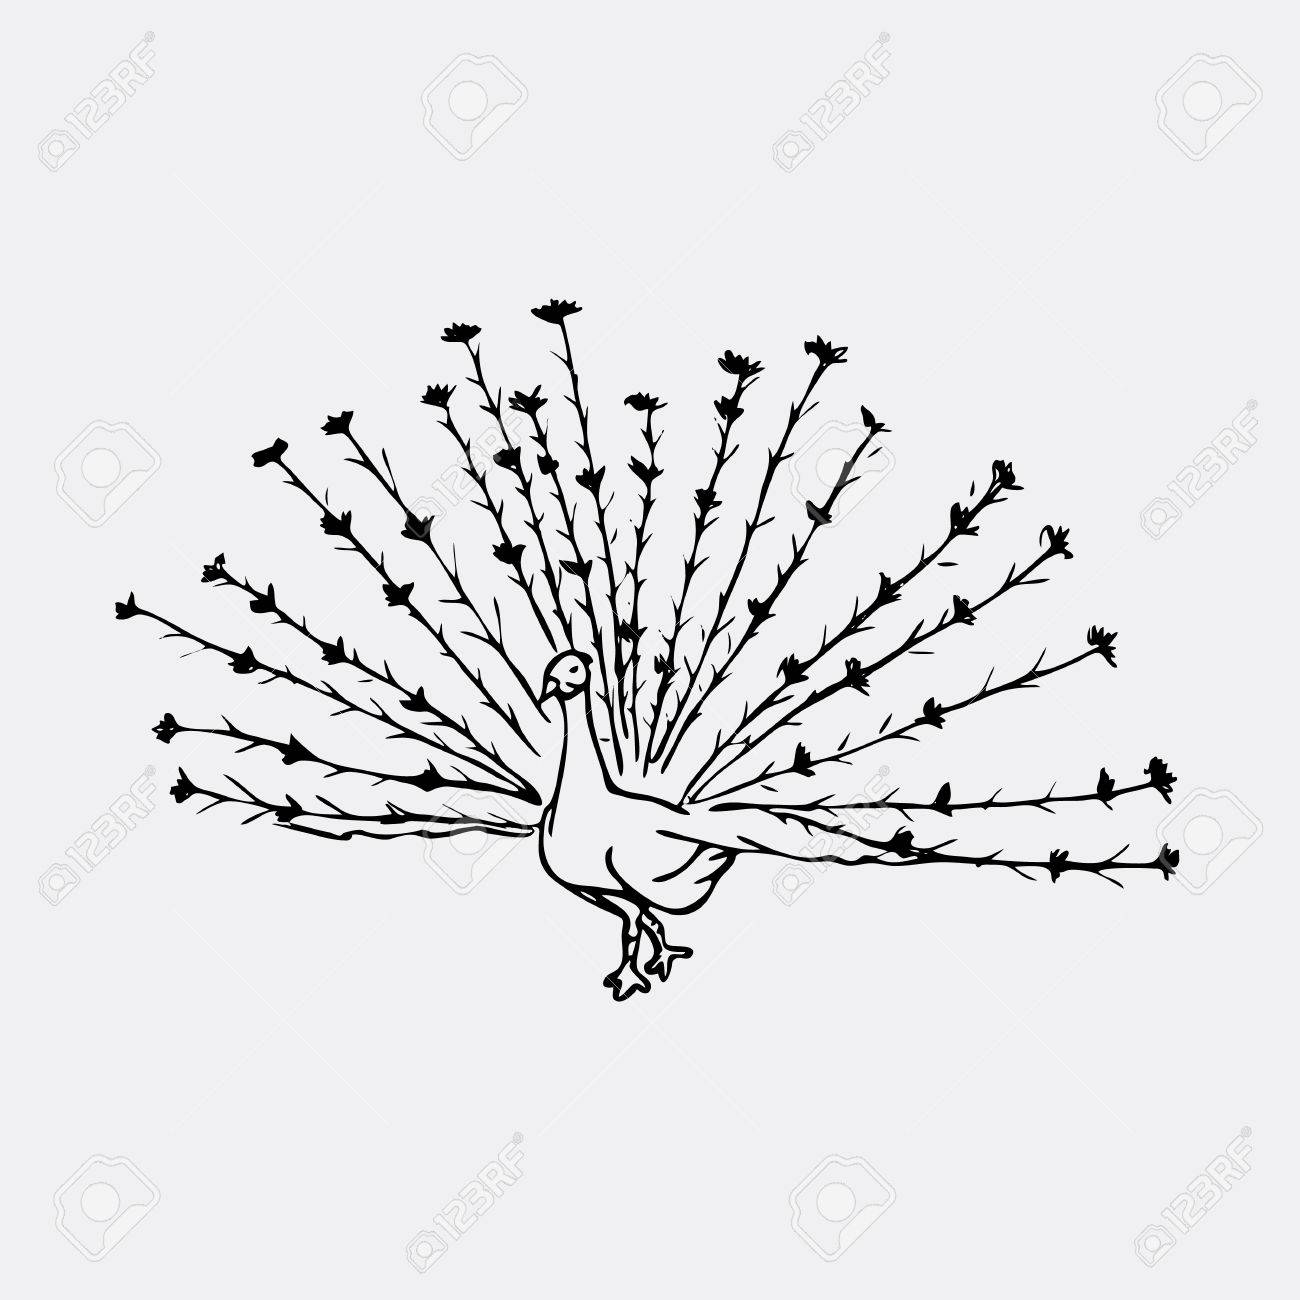 Hand Drawn Pencil Graphics Peacock Bird Engraving Stencil Royalty Free Cliparts Vectors And Stock Illustration Image 68319521